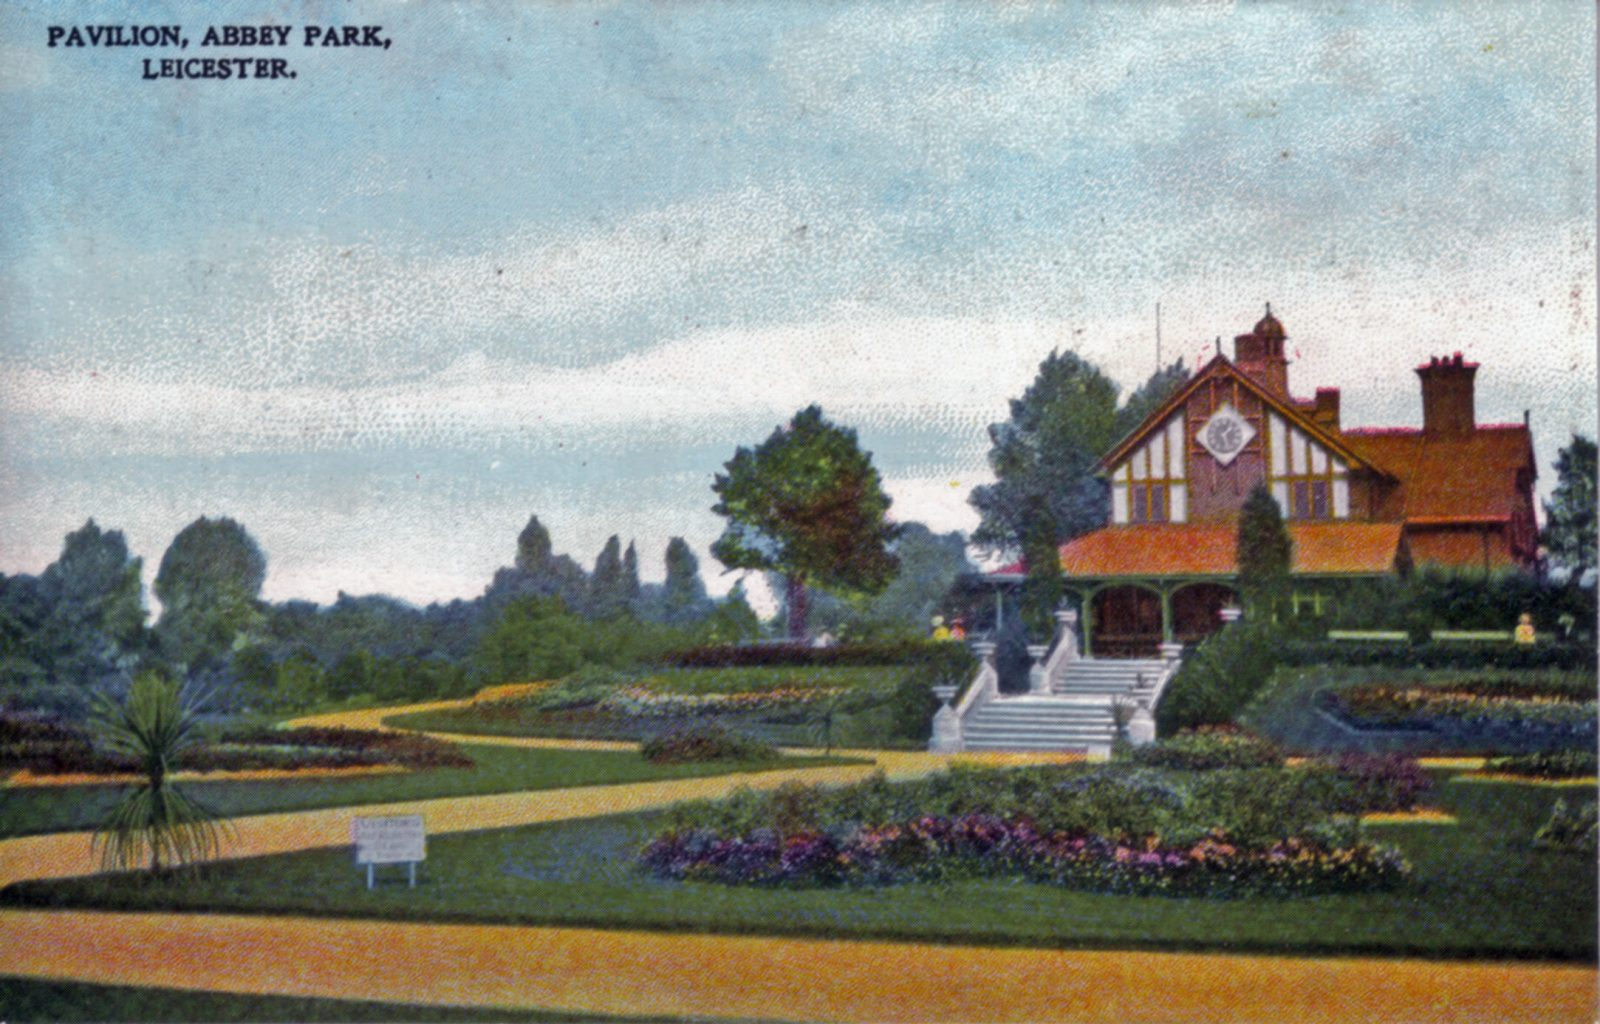 Abbey Park, Leicester. 1901-1920: Pavilion and carpet bedding. Franked 1906 (File:1027)